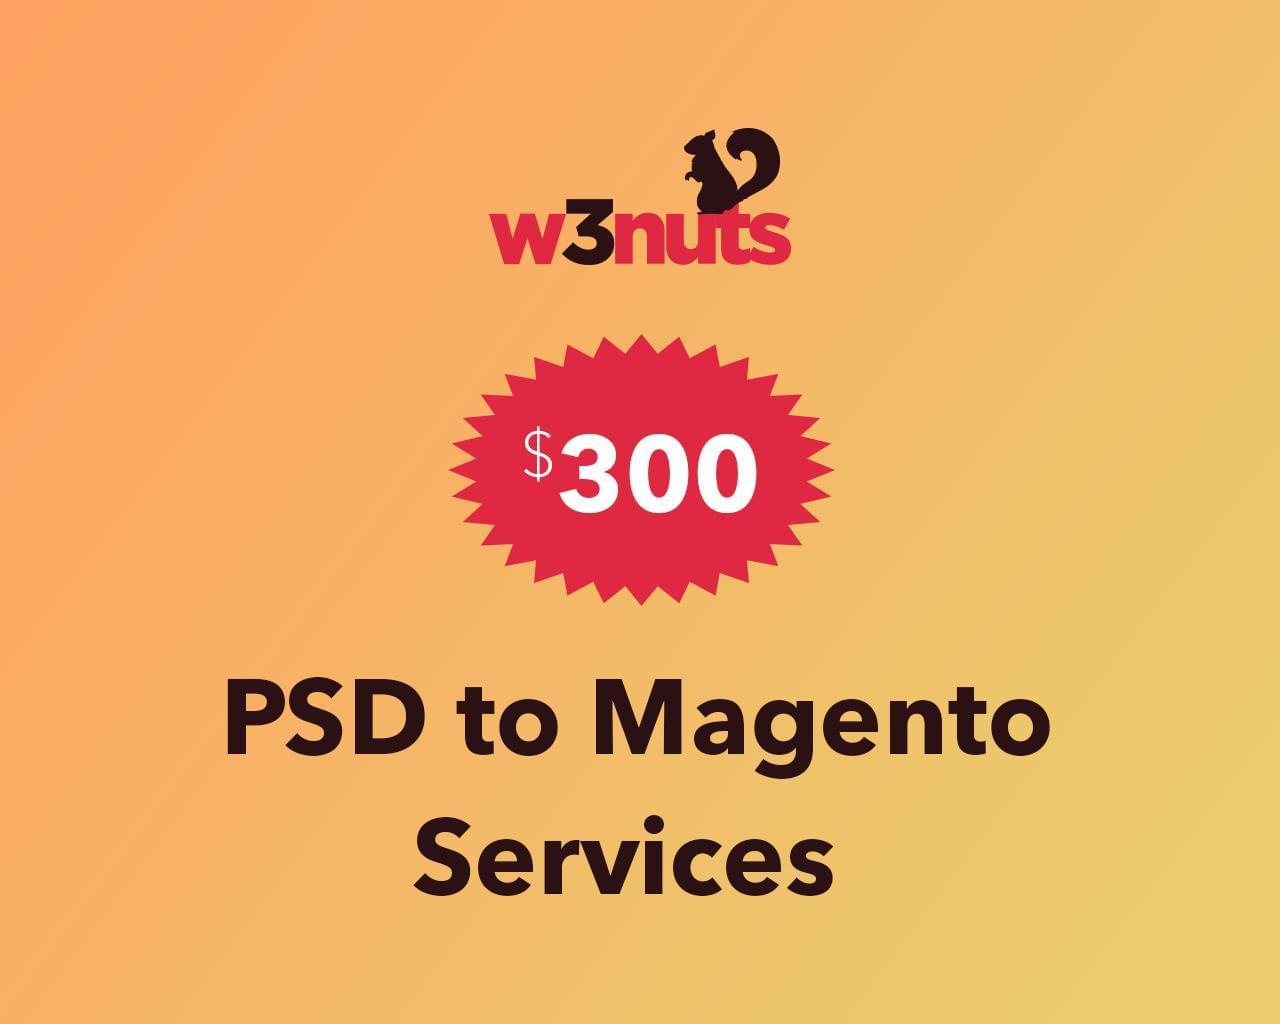 PSD to Magento Development Services by samirkaila - 116145